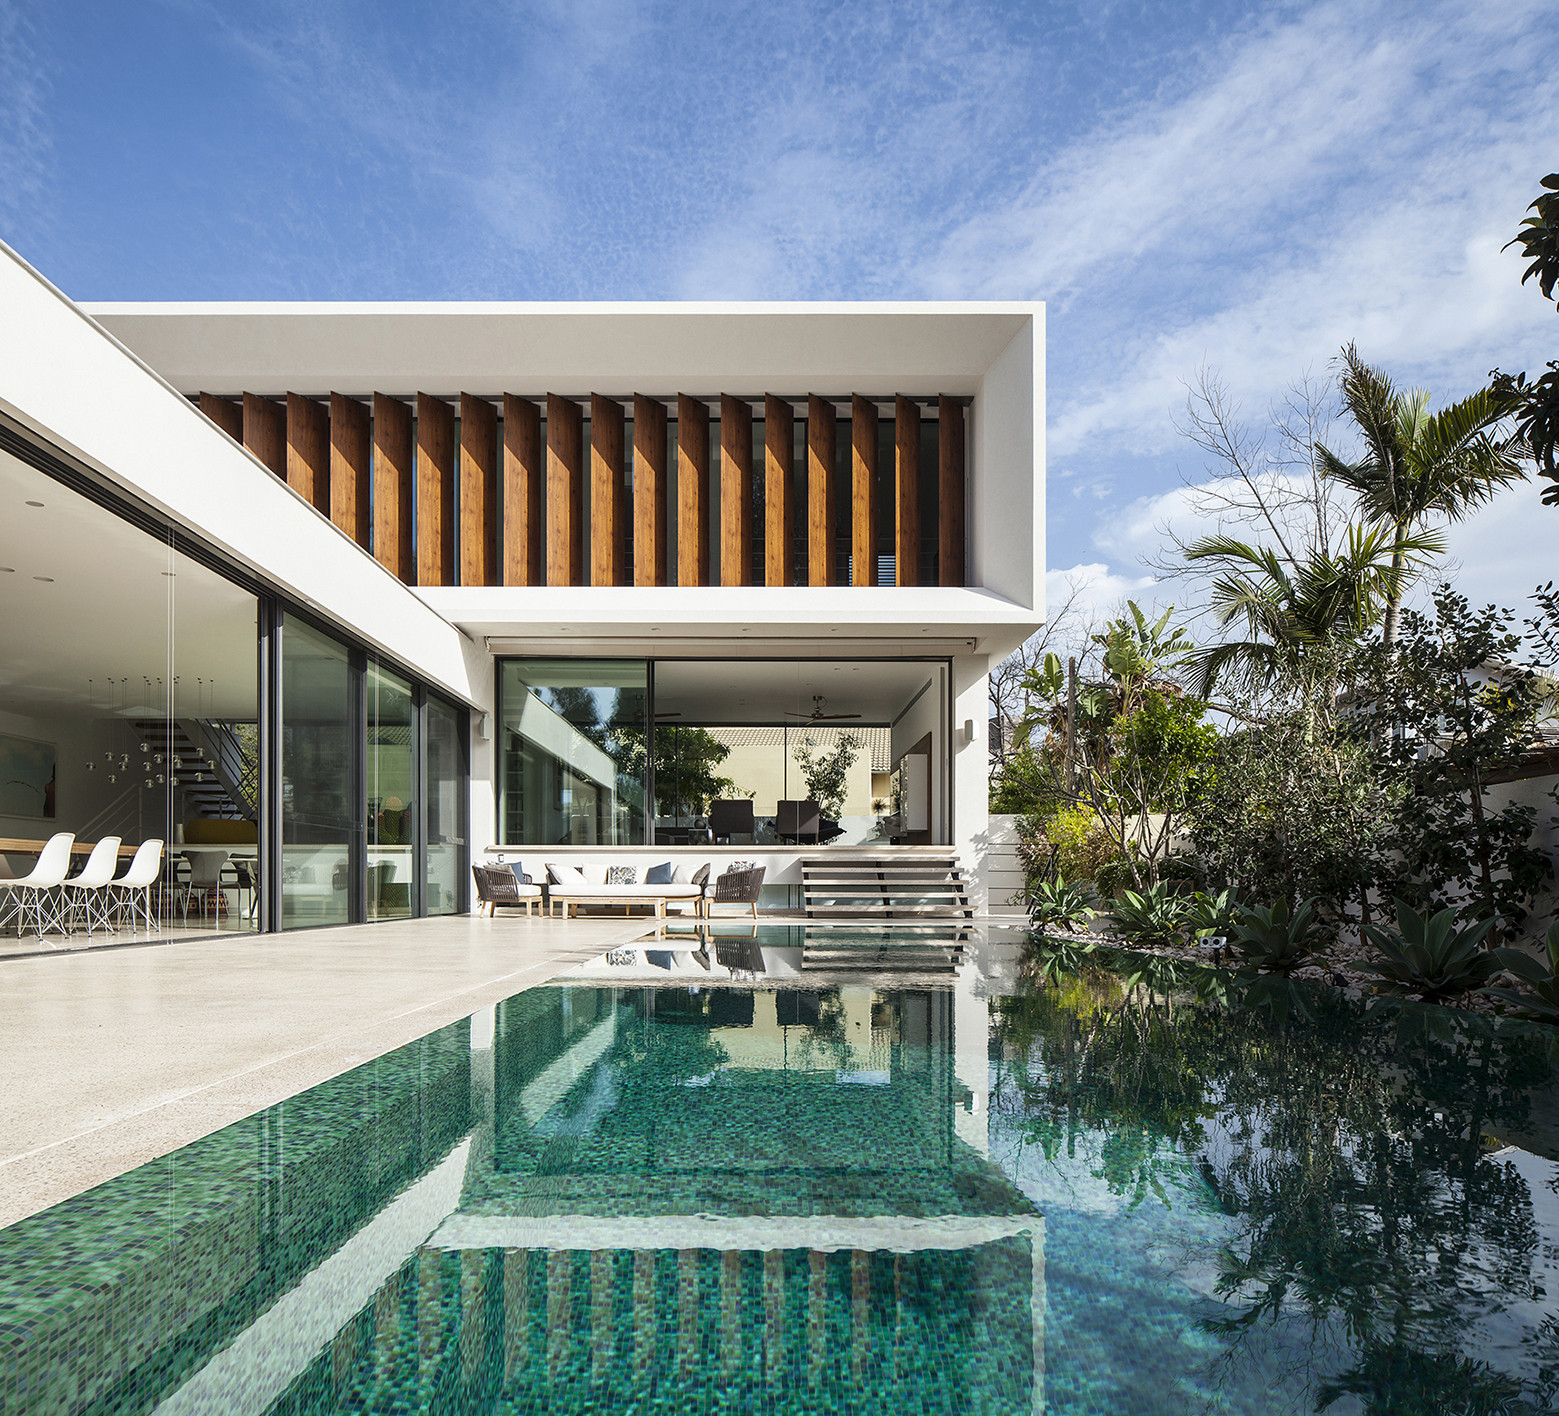 Mediterranean villa paz gersh architects archdaily for Villa ideas designs